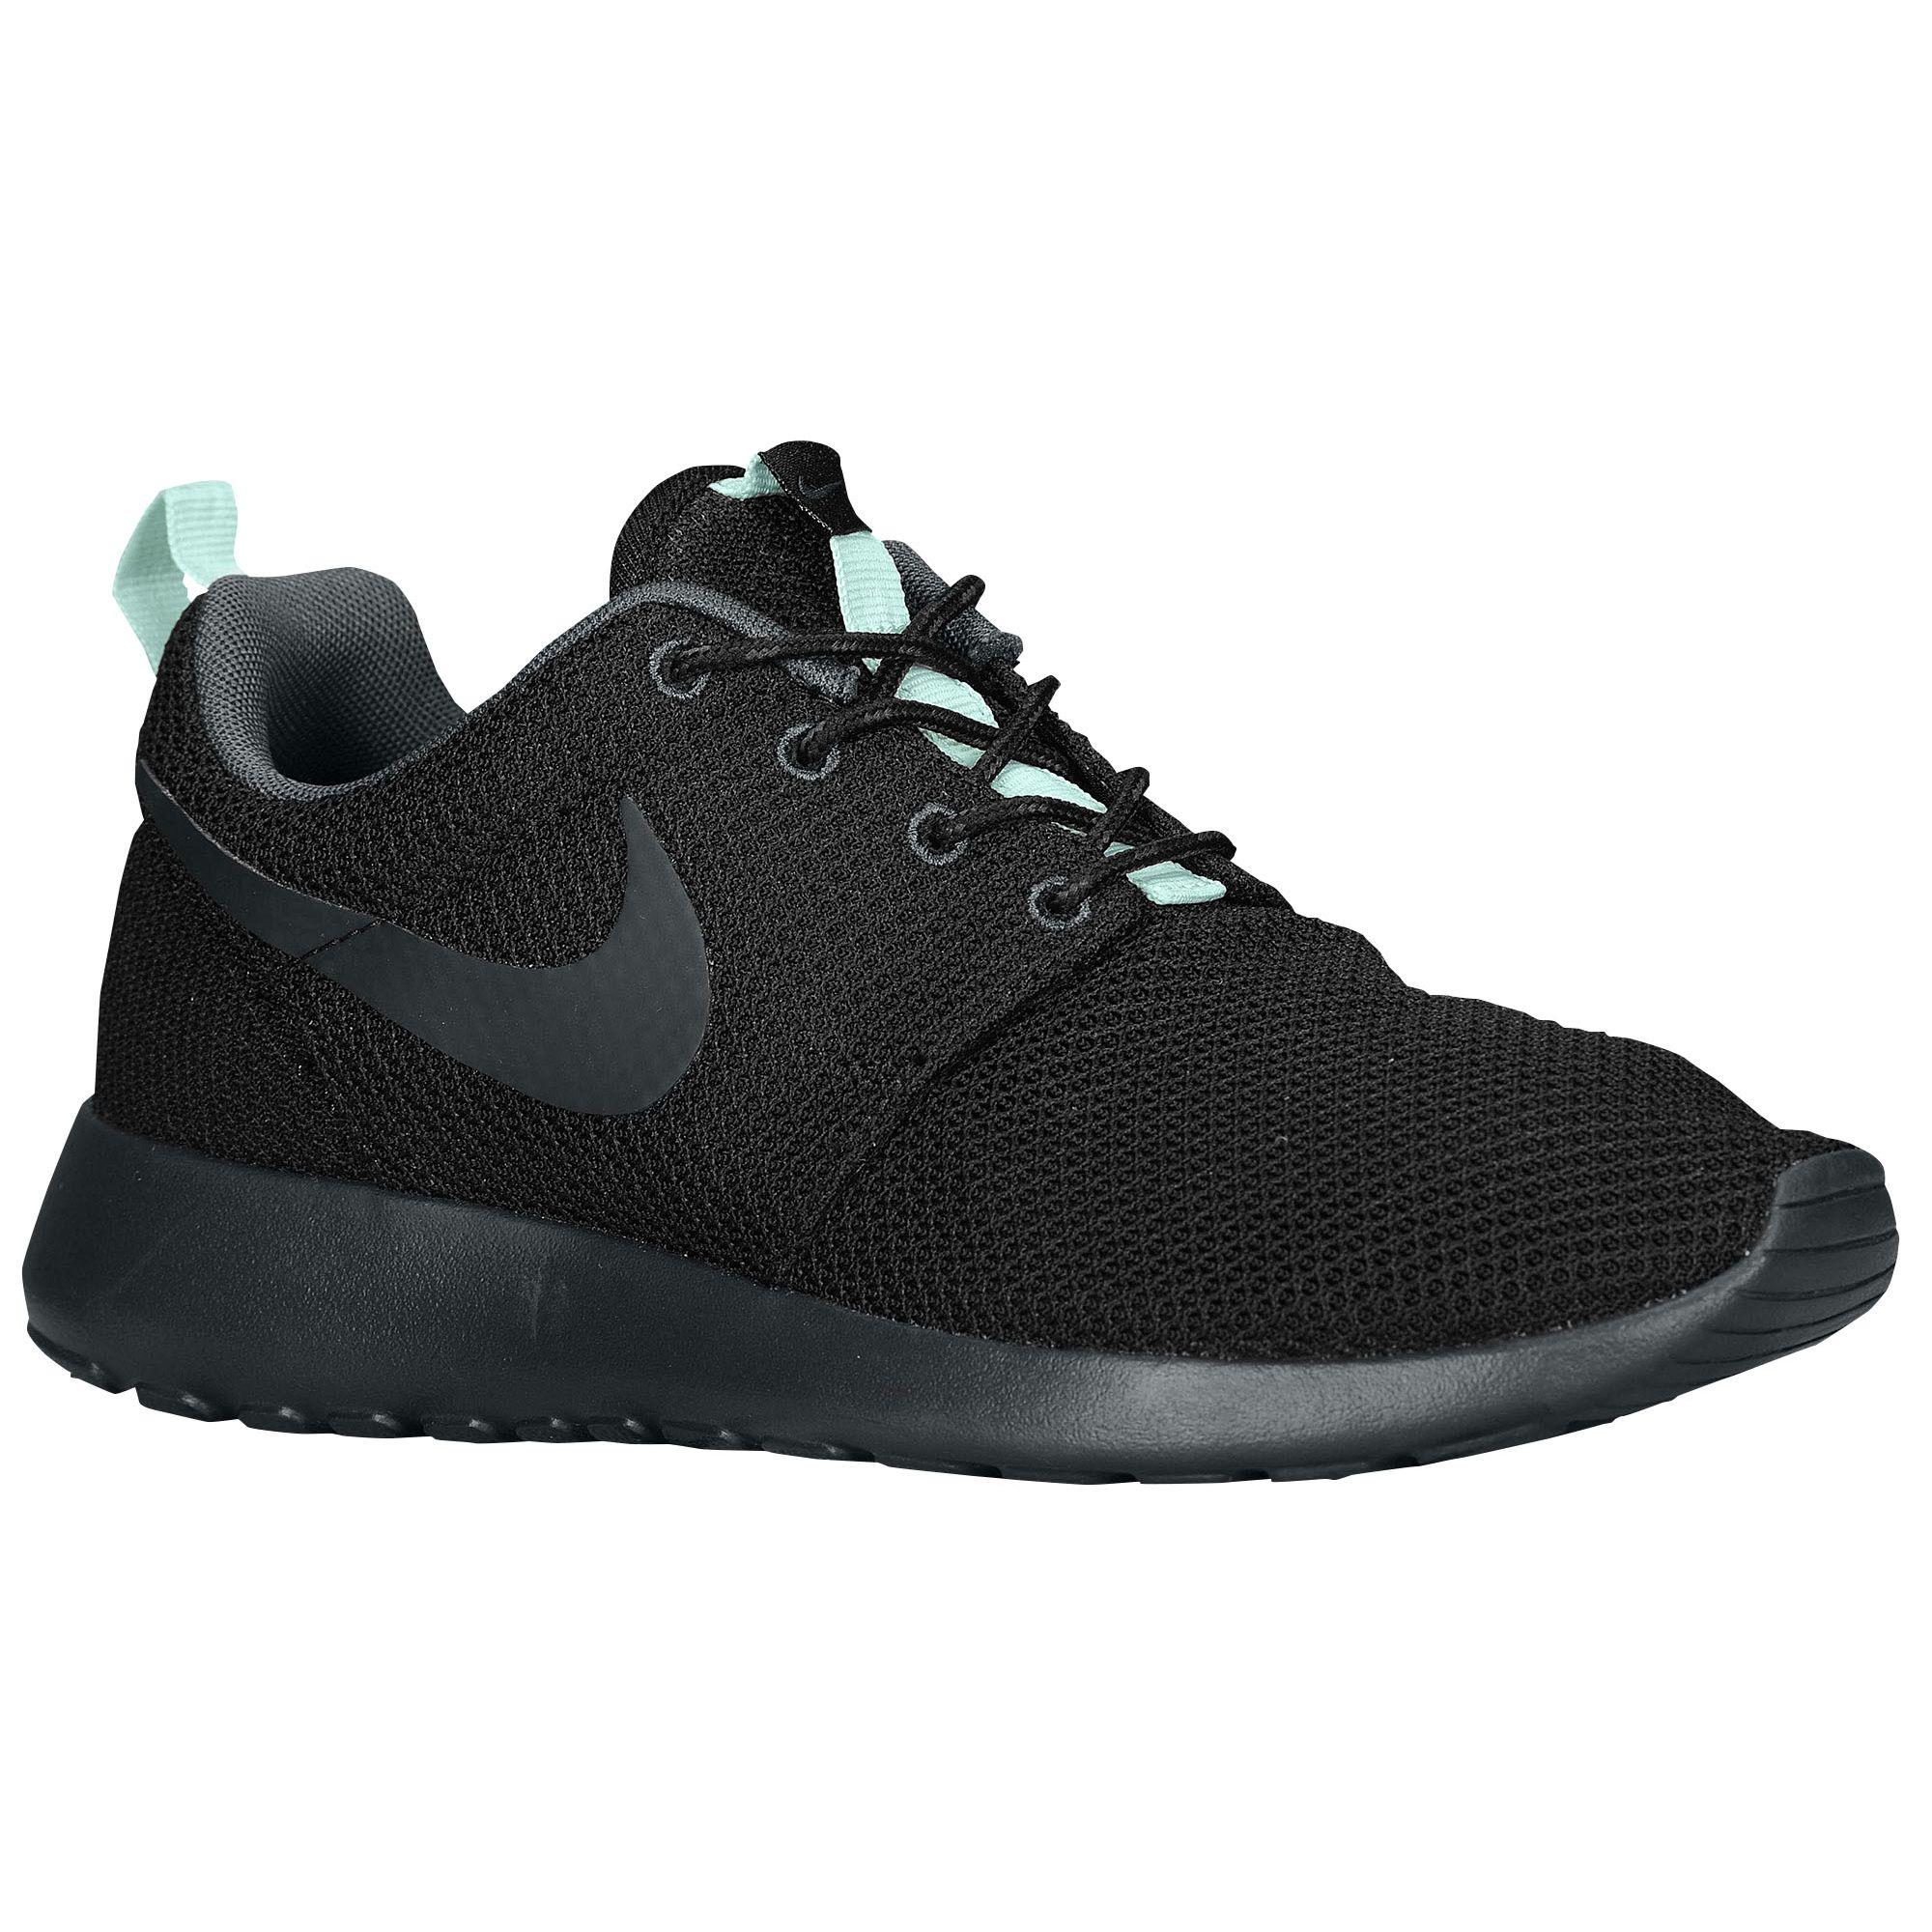 Nike Roshe Run - Women's at Champs Sports from Champs Sports